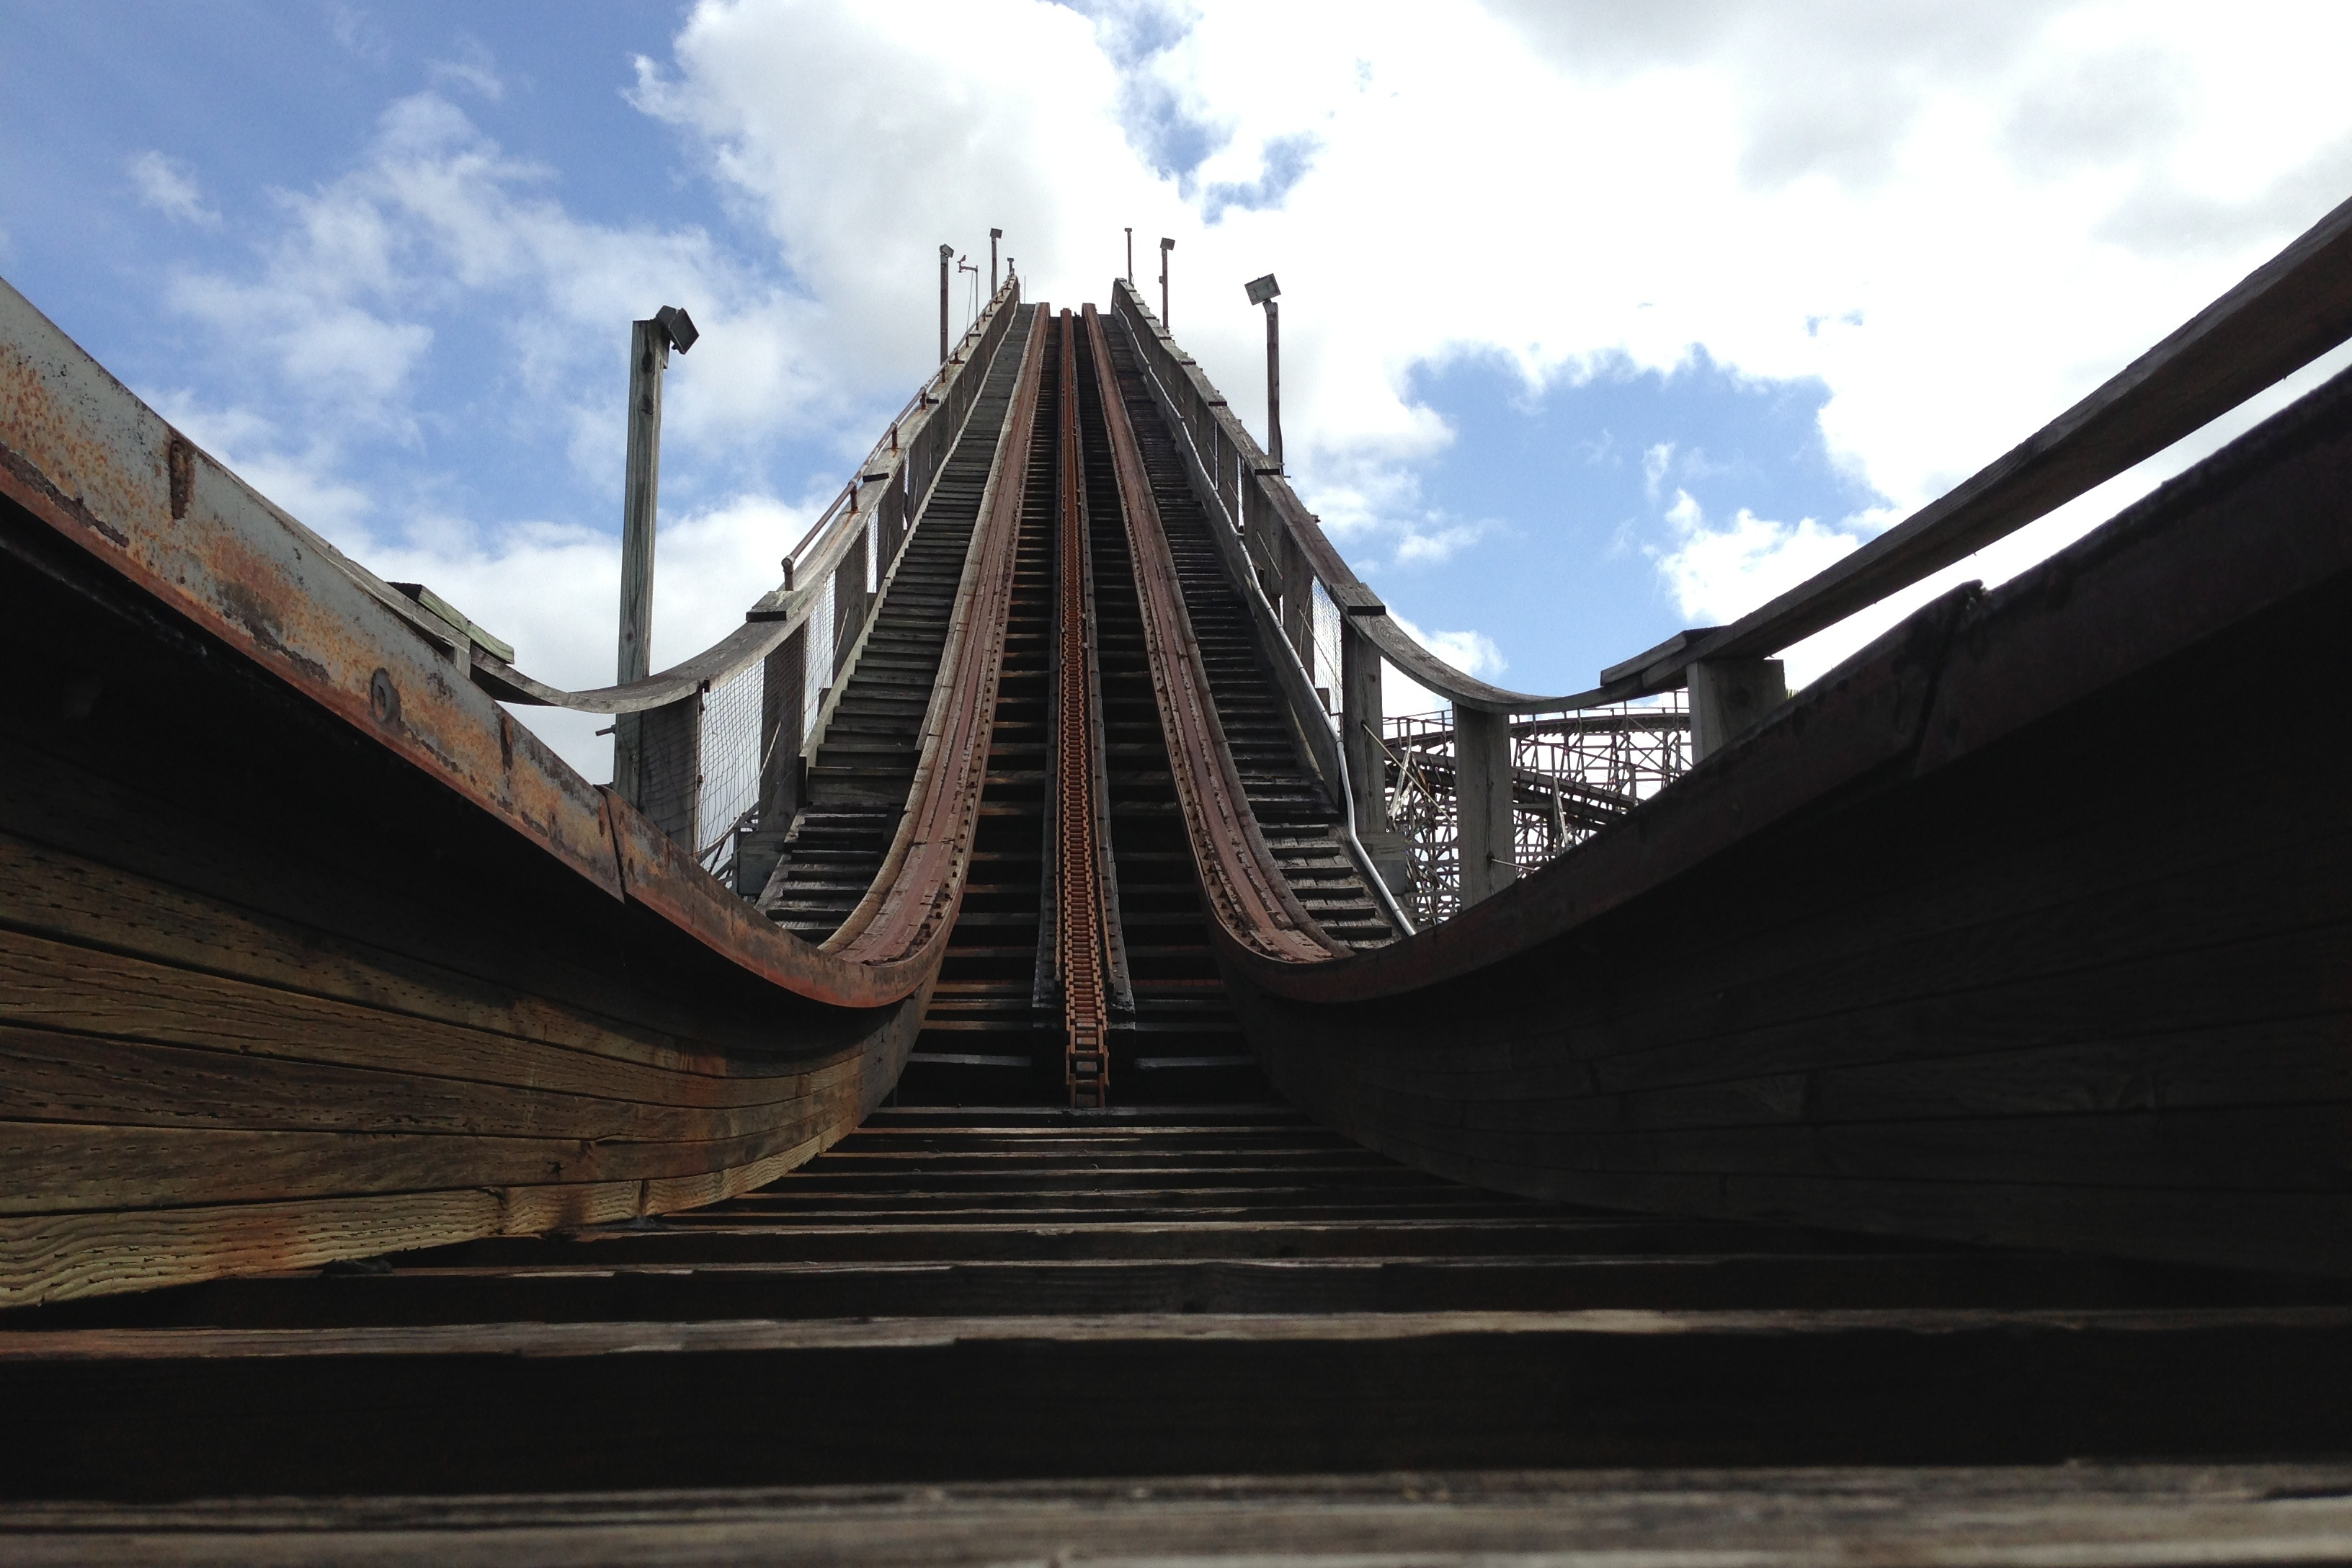 Reporter's Notebook: A Musical Ode To A Roller Coaster | WLRN